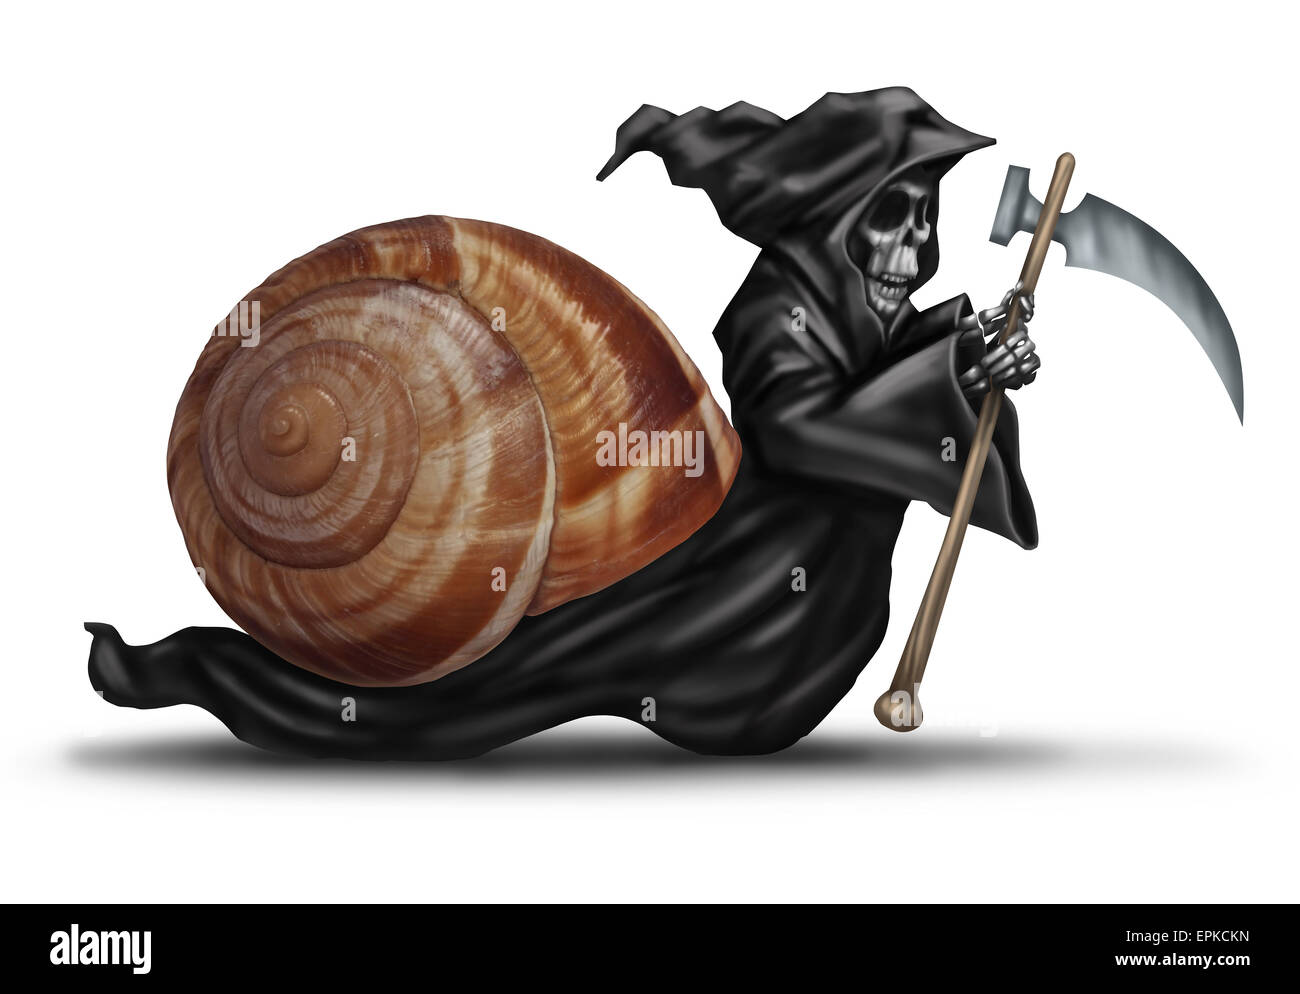 Slow aging health care concept as a snail shell with a grim reaper character moving slowly as a health care metaphor Stock Photo